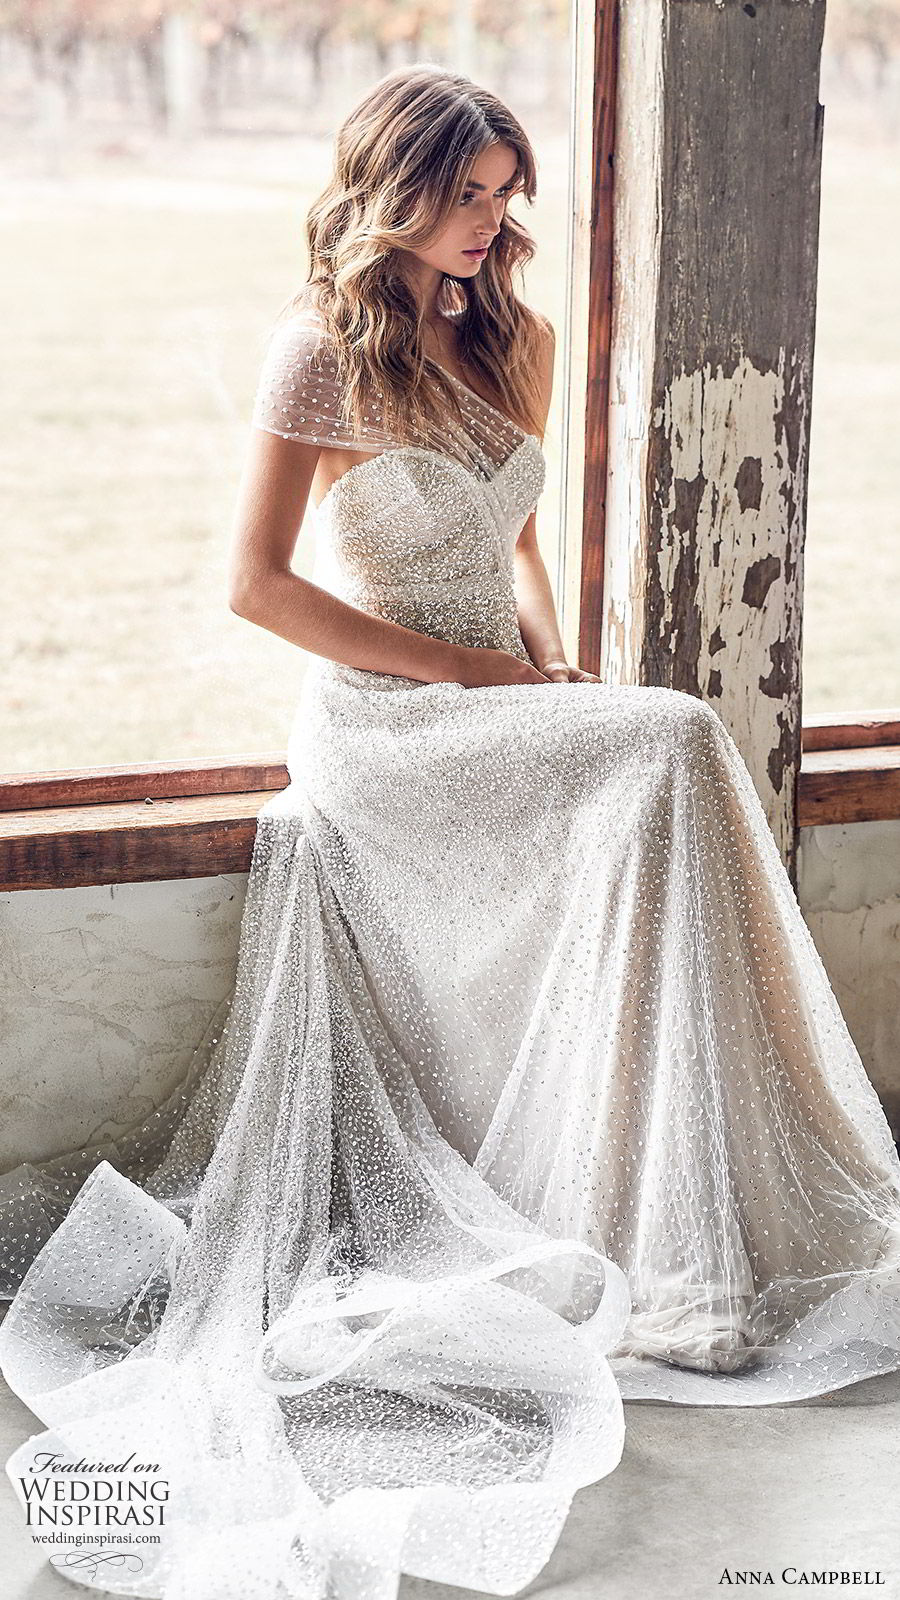 anna campbell 2020 bridal illusion one shoulder ruched bodice sweetheart fully embellished a line wedding dress (13) glitzy glam romantic chapel train sv